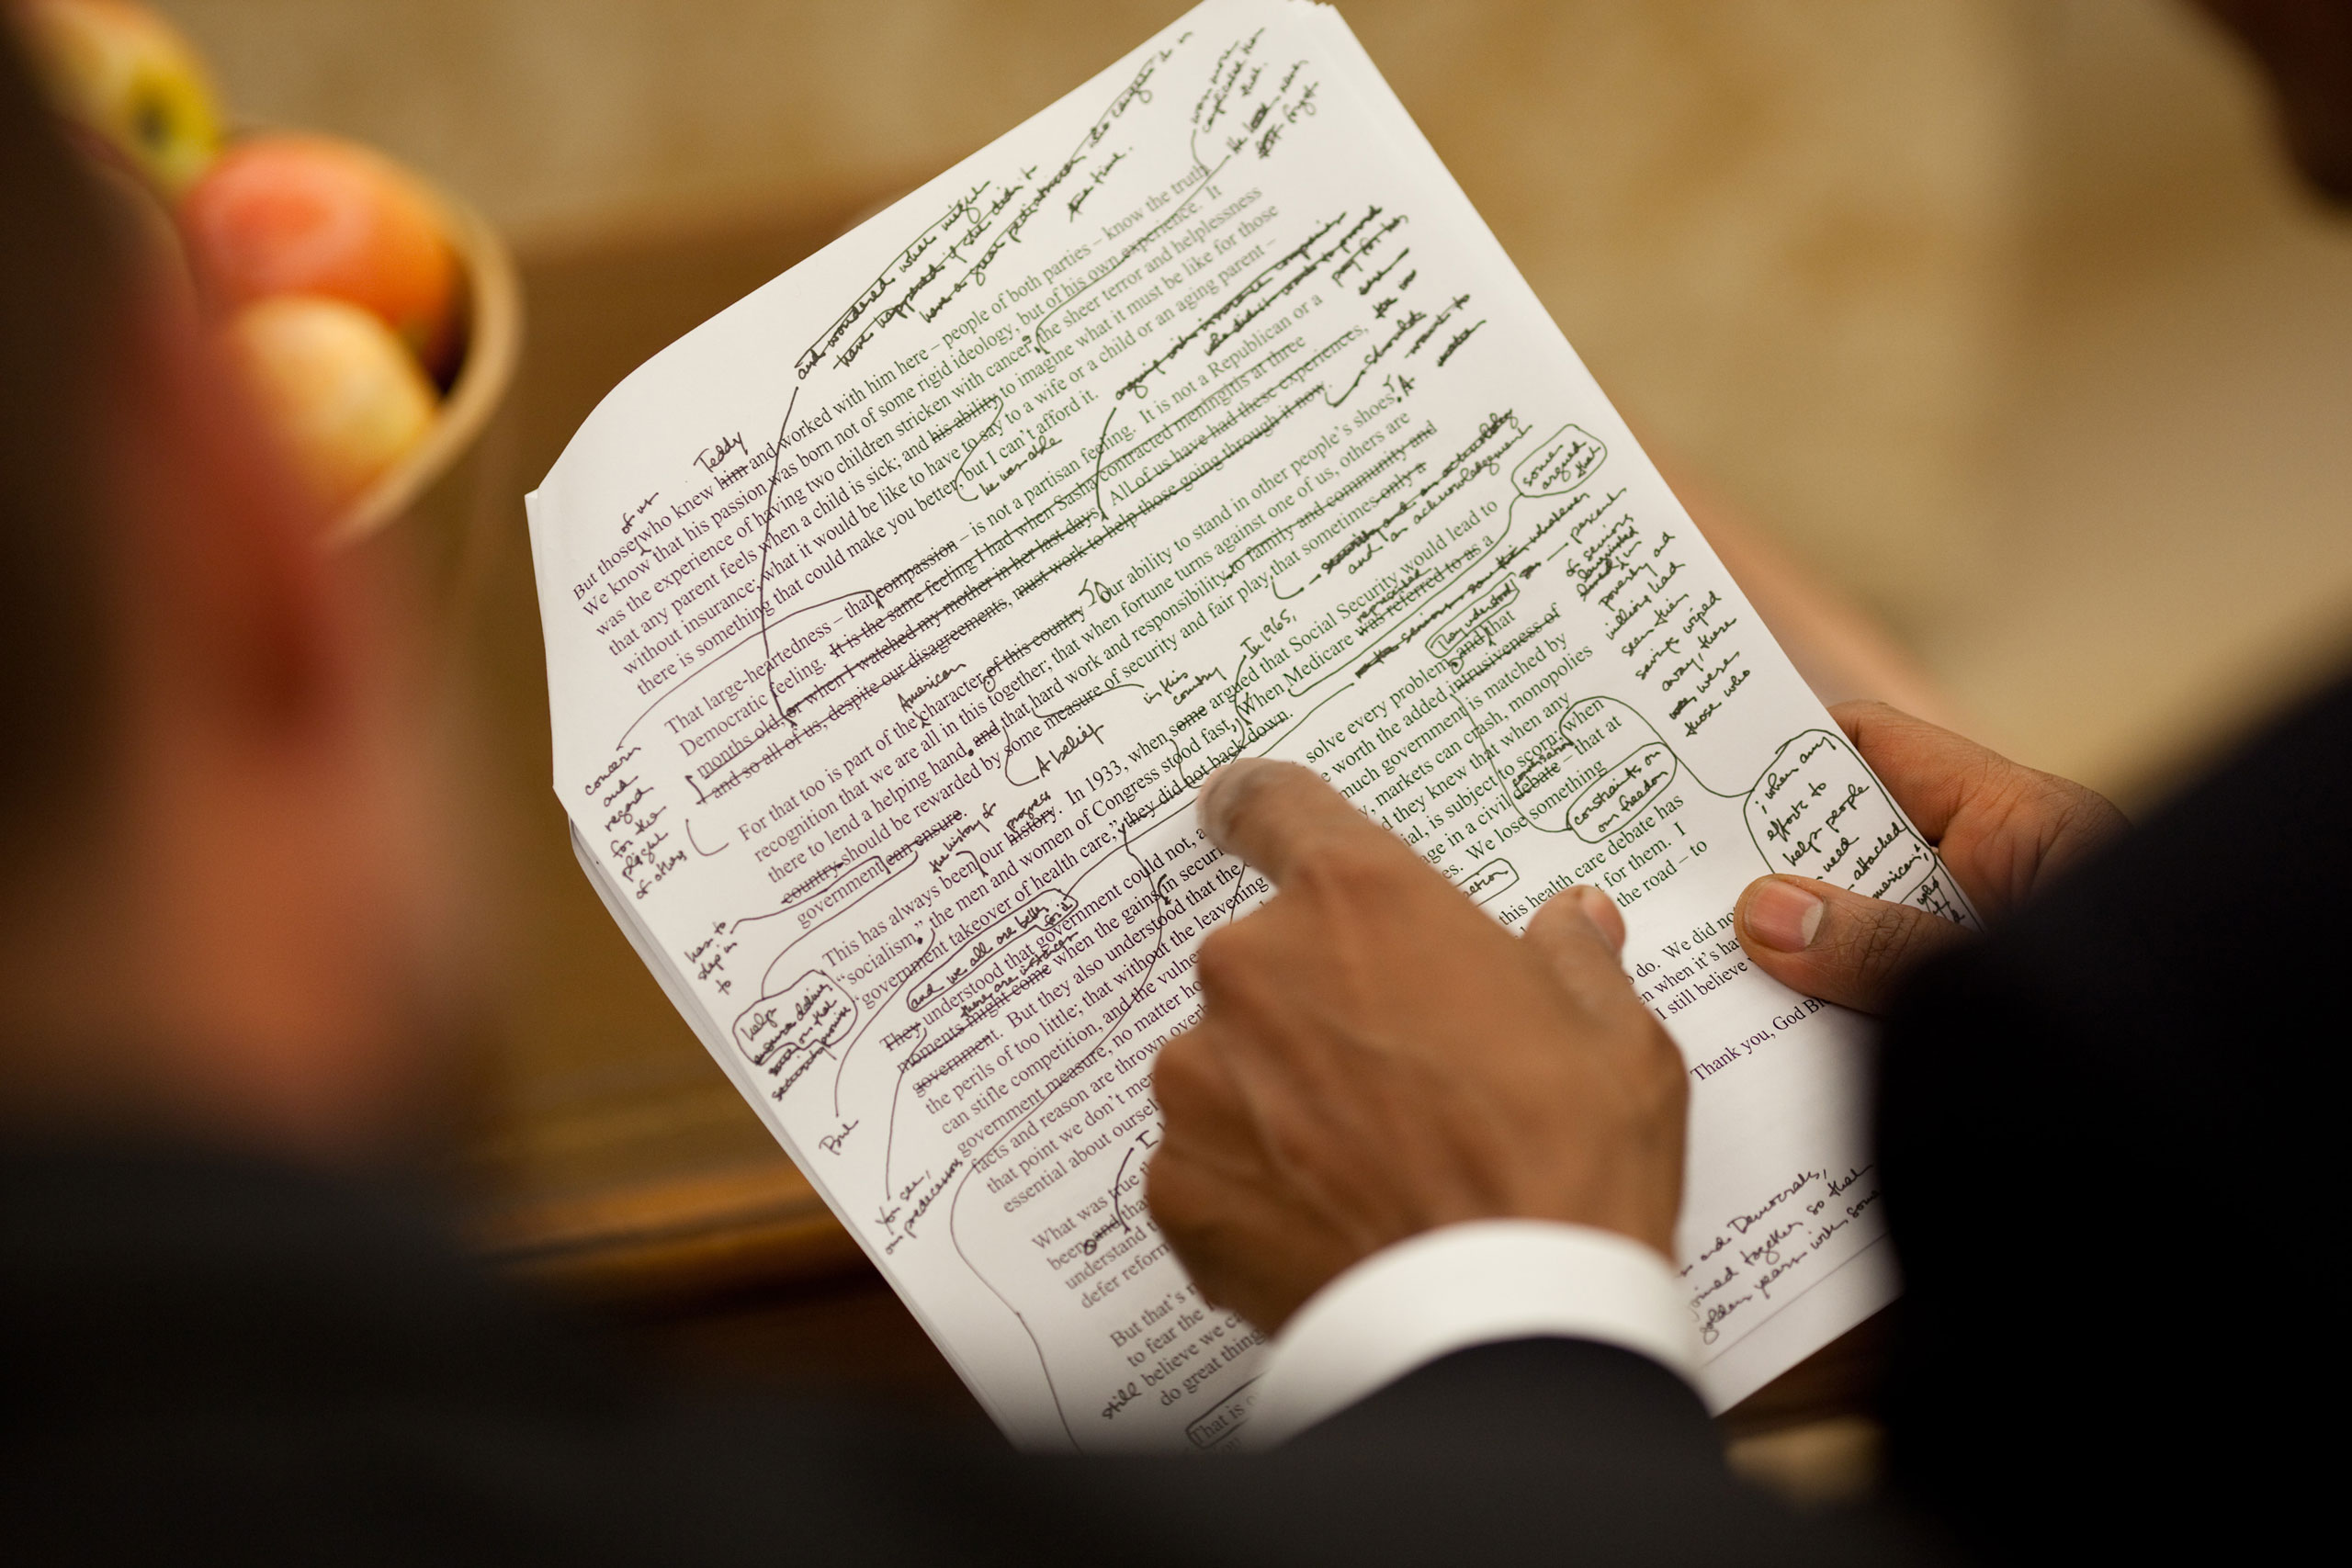 """""""The President works on his health care speech with his chief speechwriter, Jon Favreau, in the Oval Office, Sept. 9, 2009. I noticed his handwritten edits and made this close-up. It's a simple picture but it tells volumes about how involved he is in writing and editing his speeches."""""""